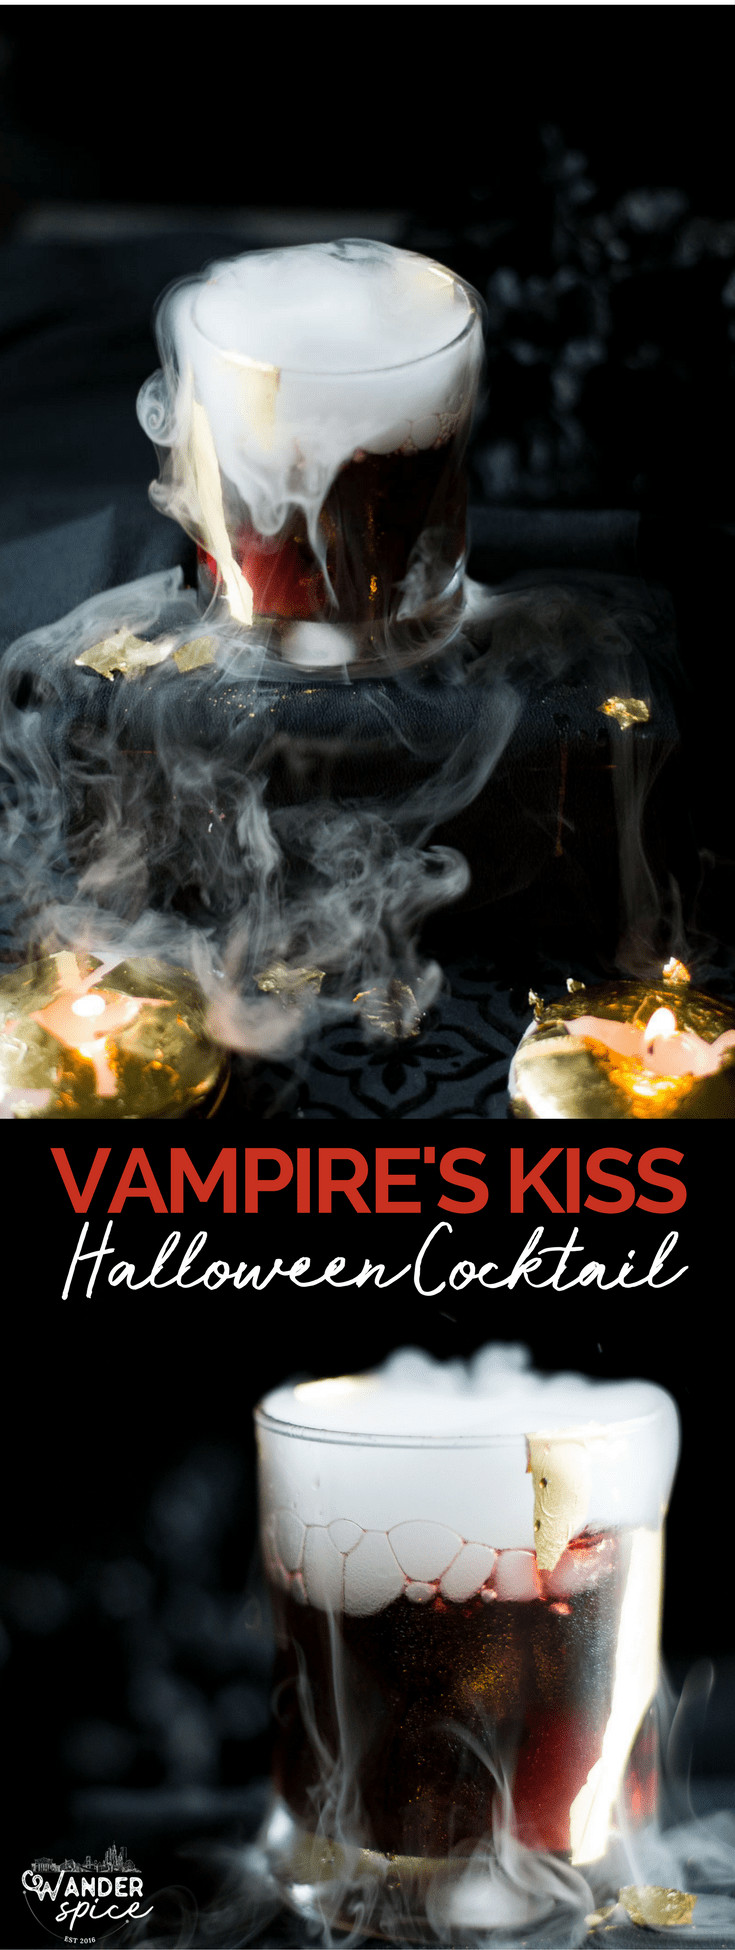 Vampire's Kiss Cocktail - Halloween Cocktail   Recipe   Spooky   Easy   Spooky   with Dry Ice